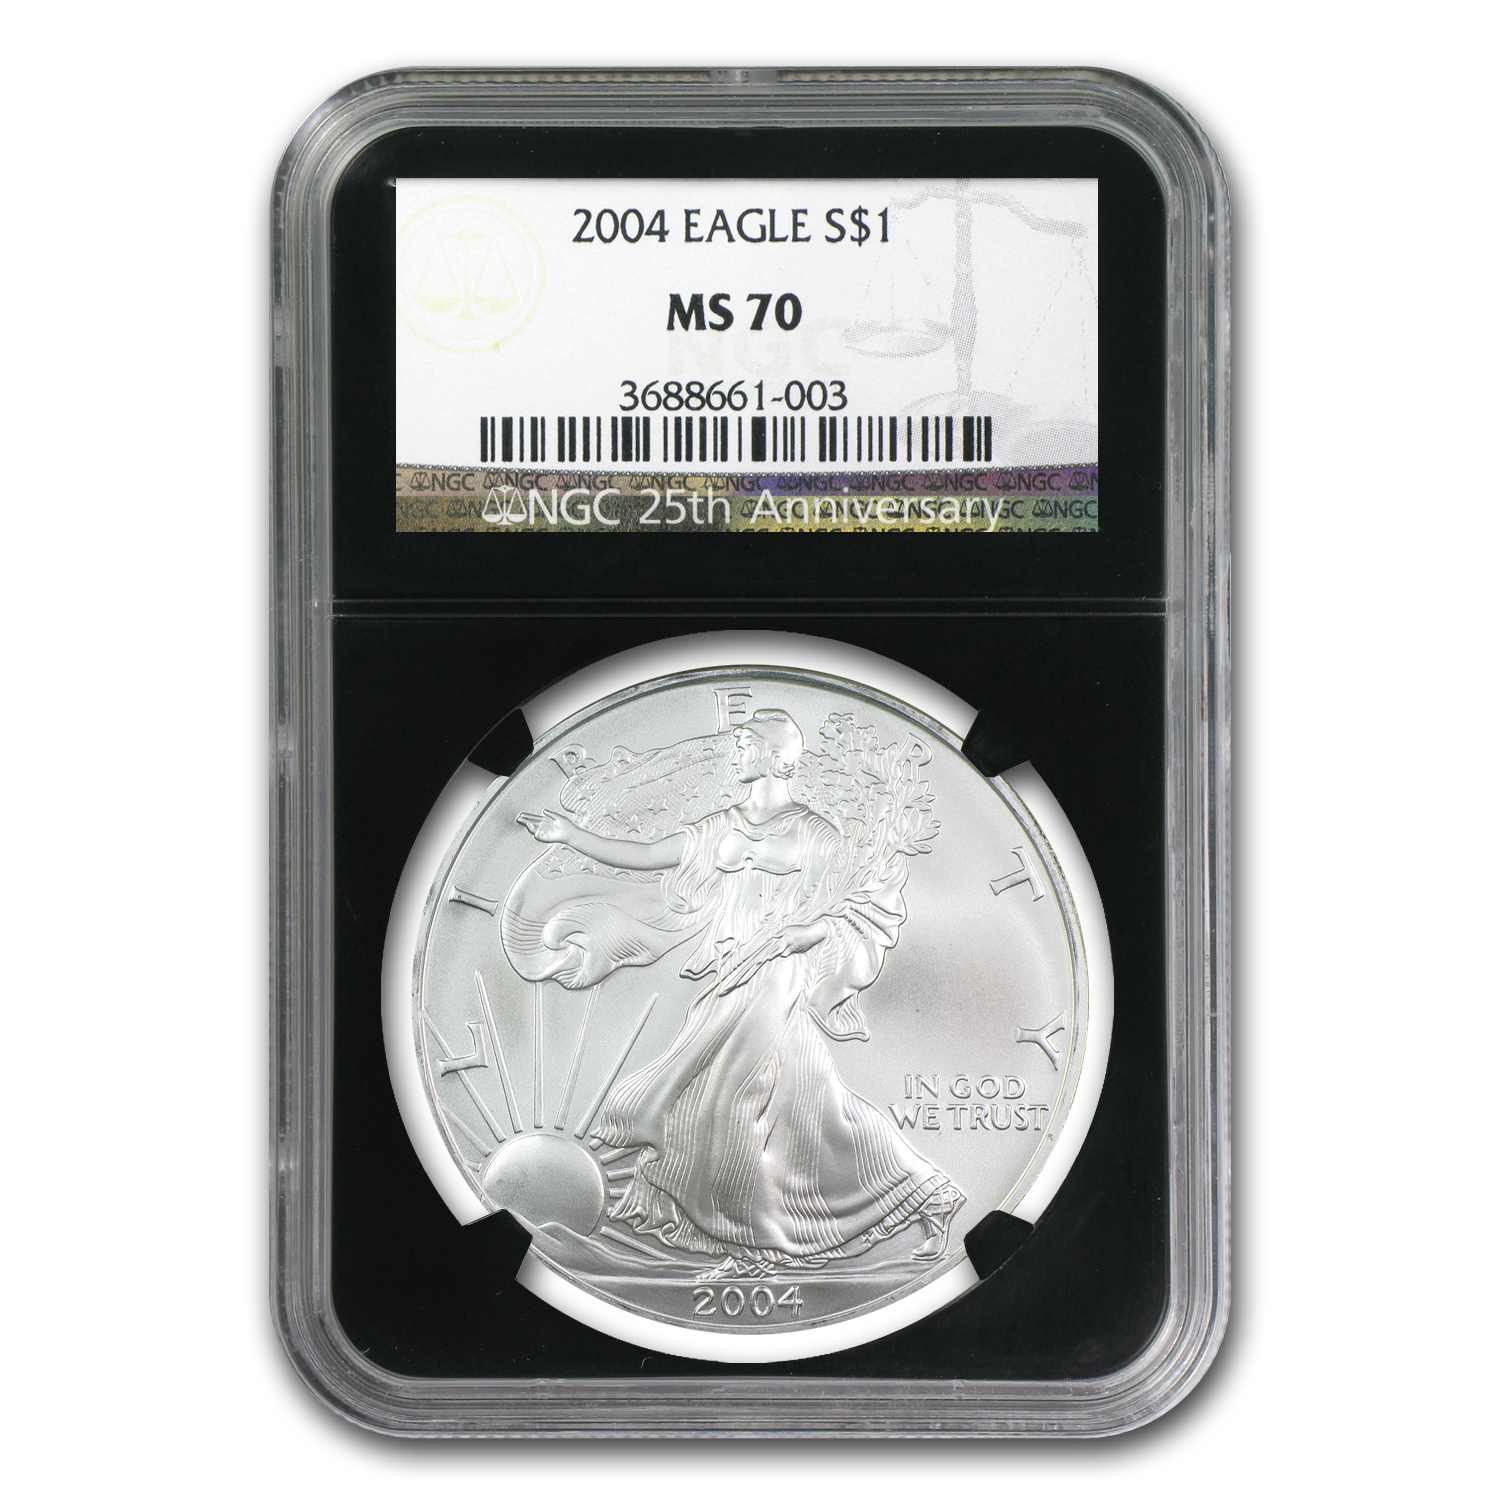 2004 Silver American Eagle - MS-70 NGC - Retro Black Insert